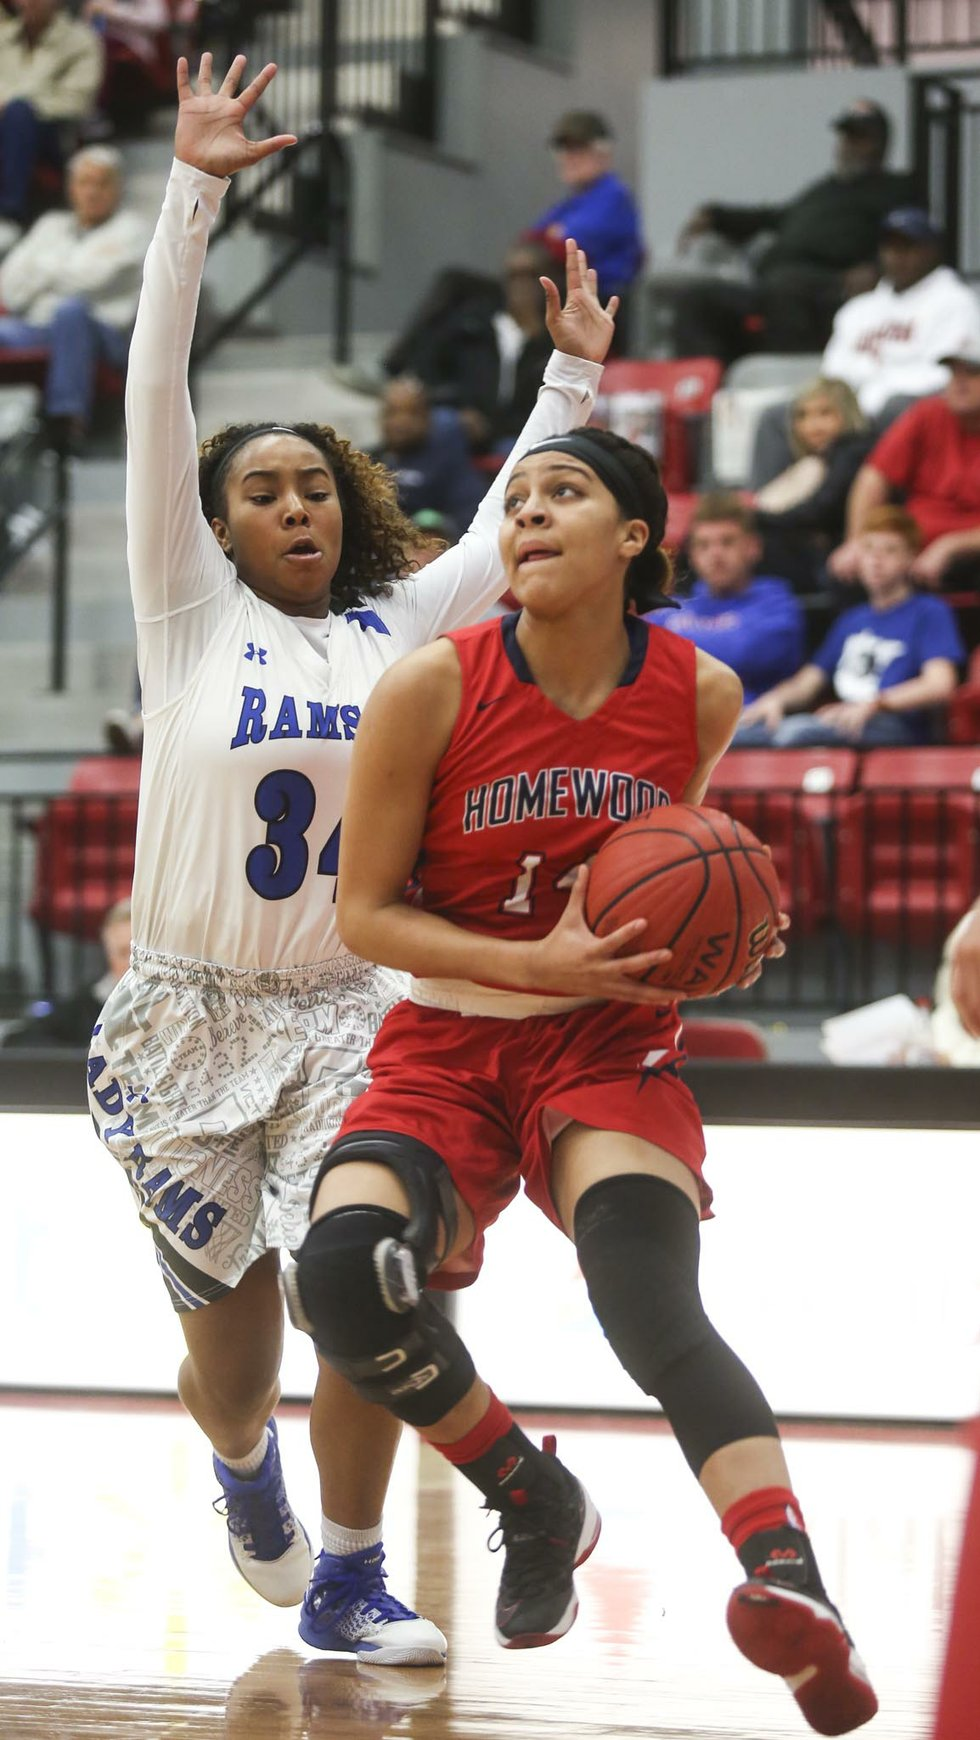 Homewood Girls Basketball VS Ramsay Regionals 2017